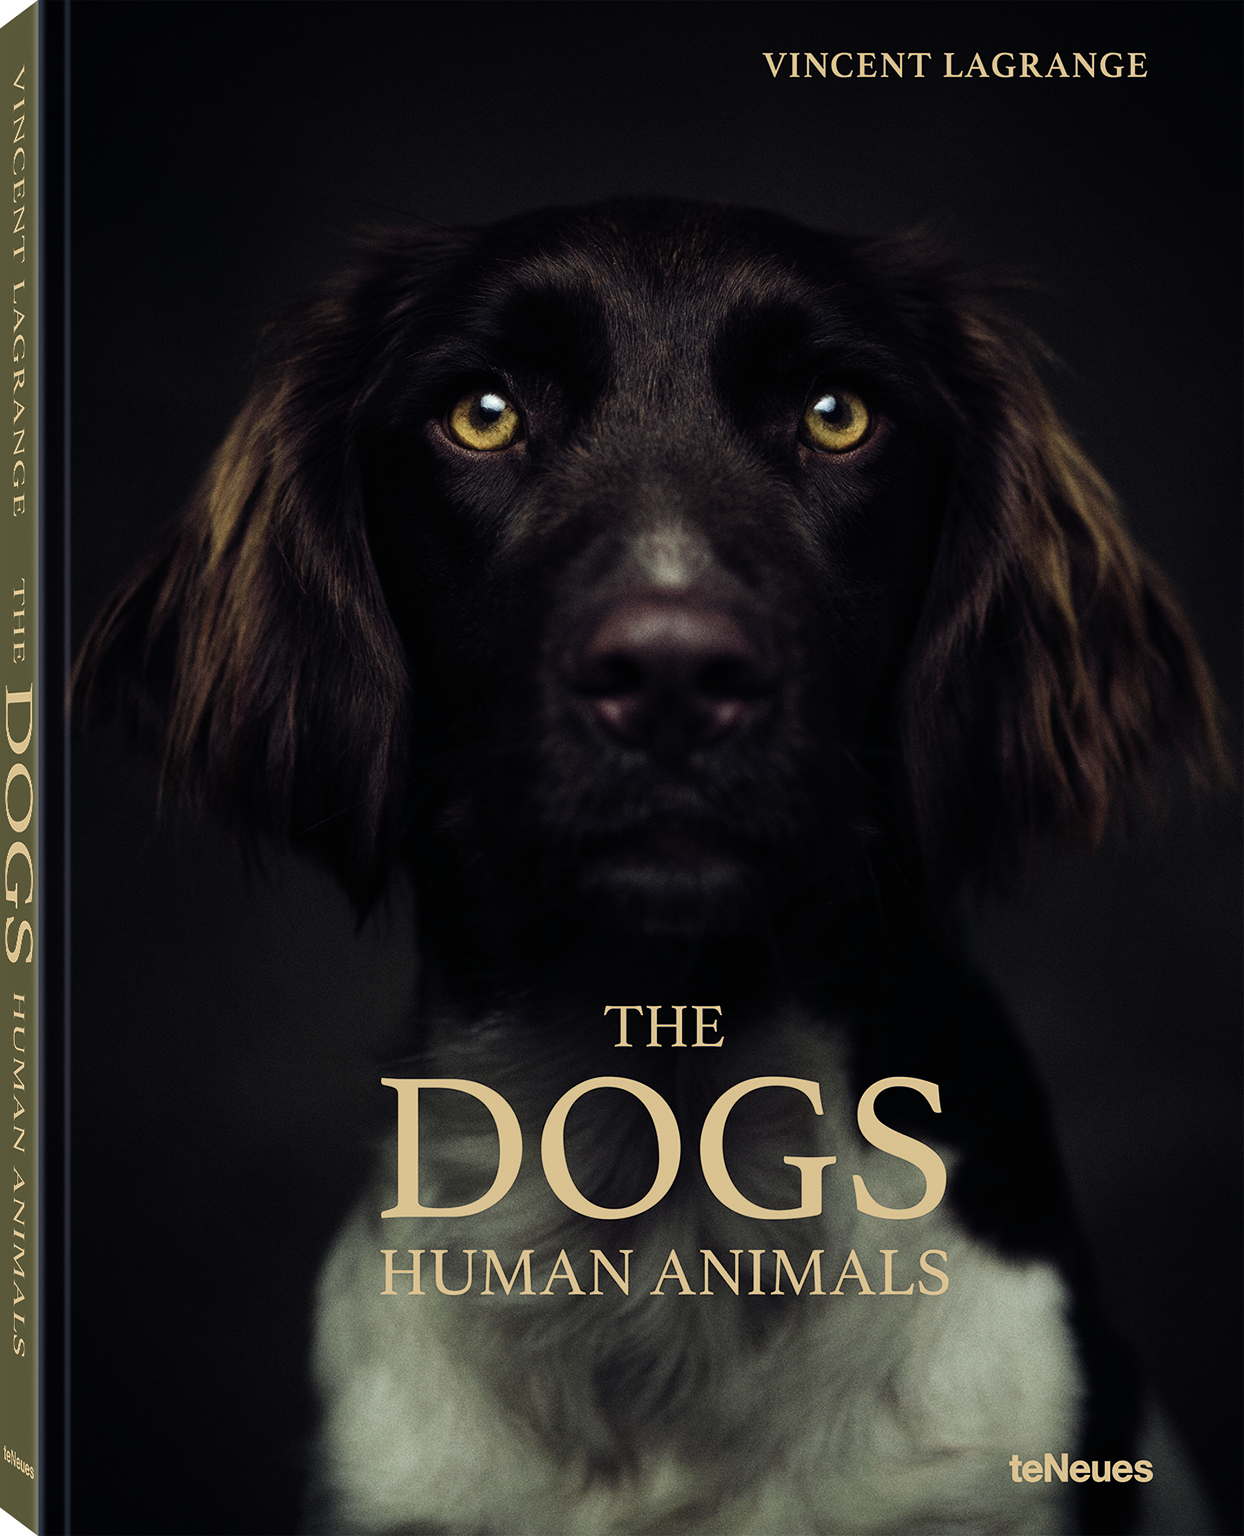 the dogs human animals book cover